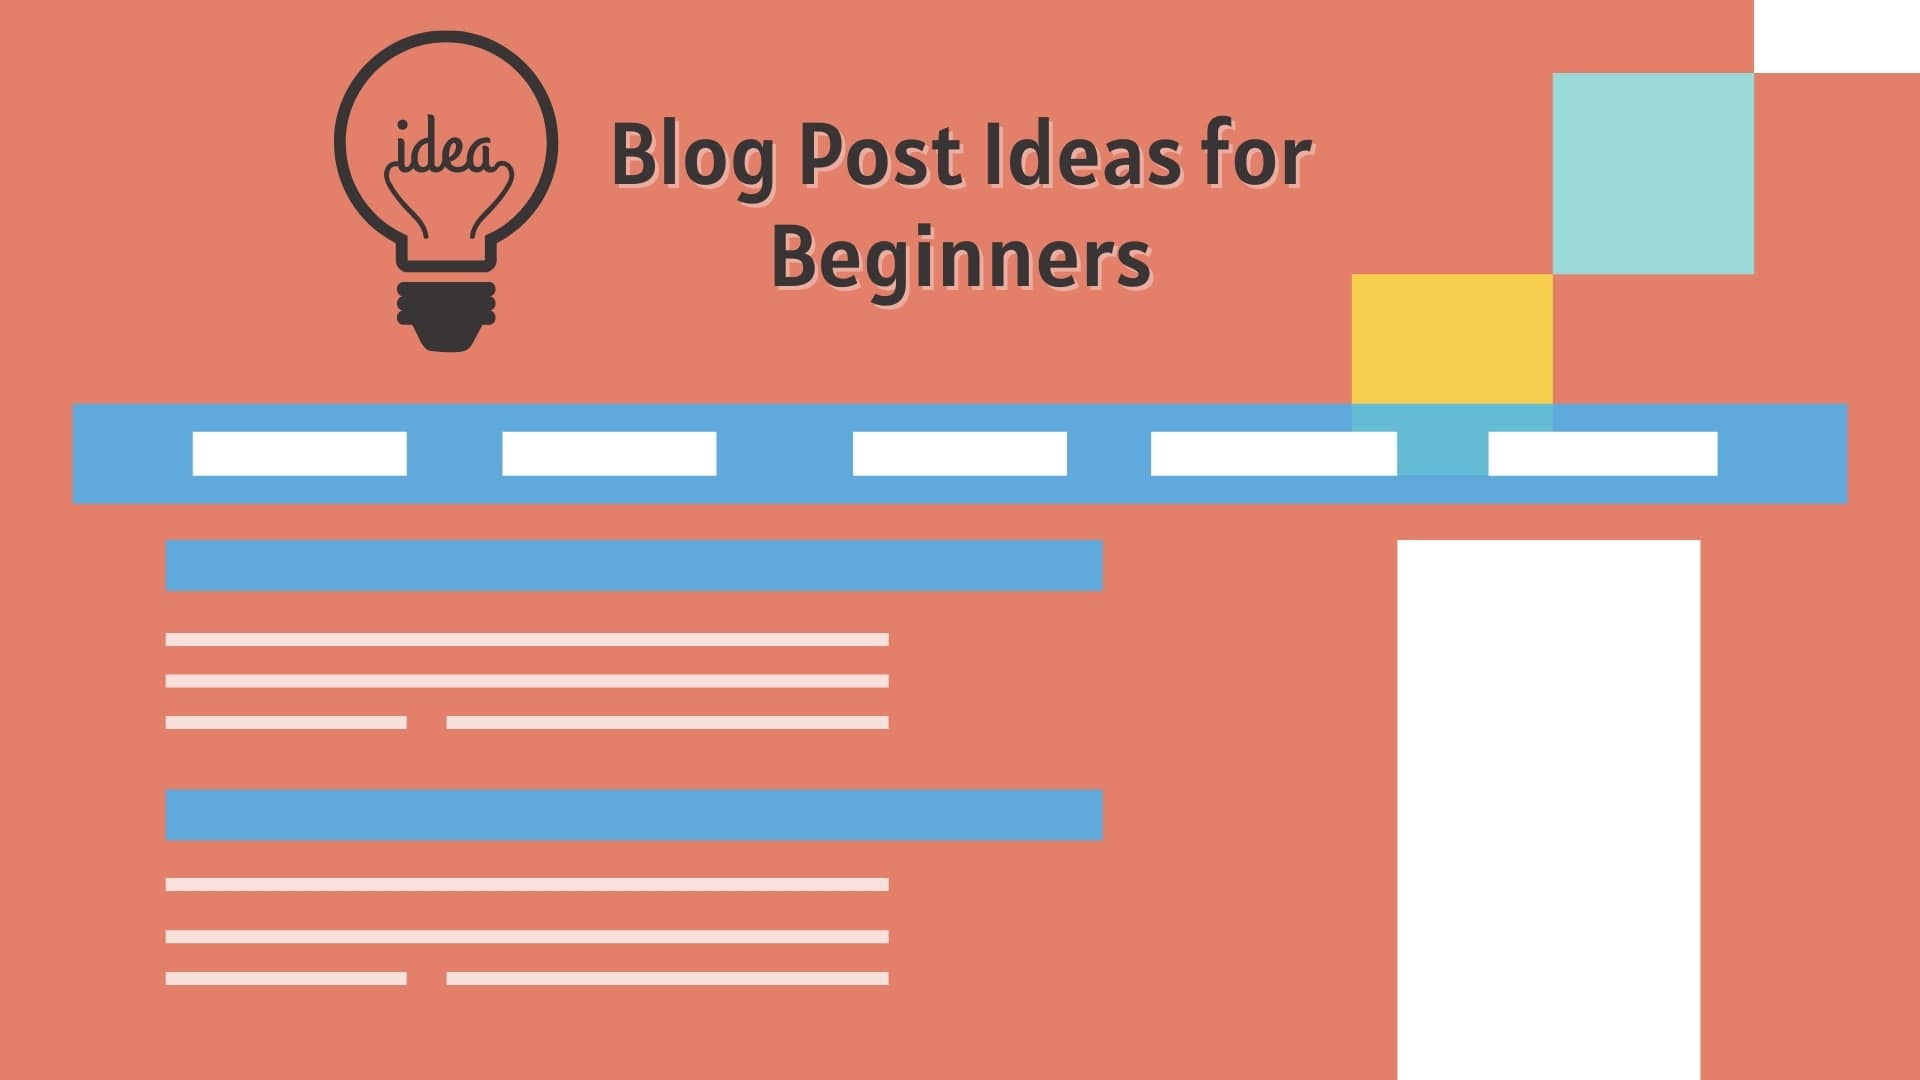 Blog Post Ideas for Beginners - Find Blog Post Ideas and Topic to Write About